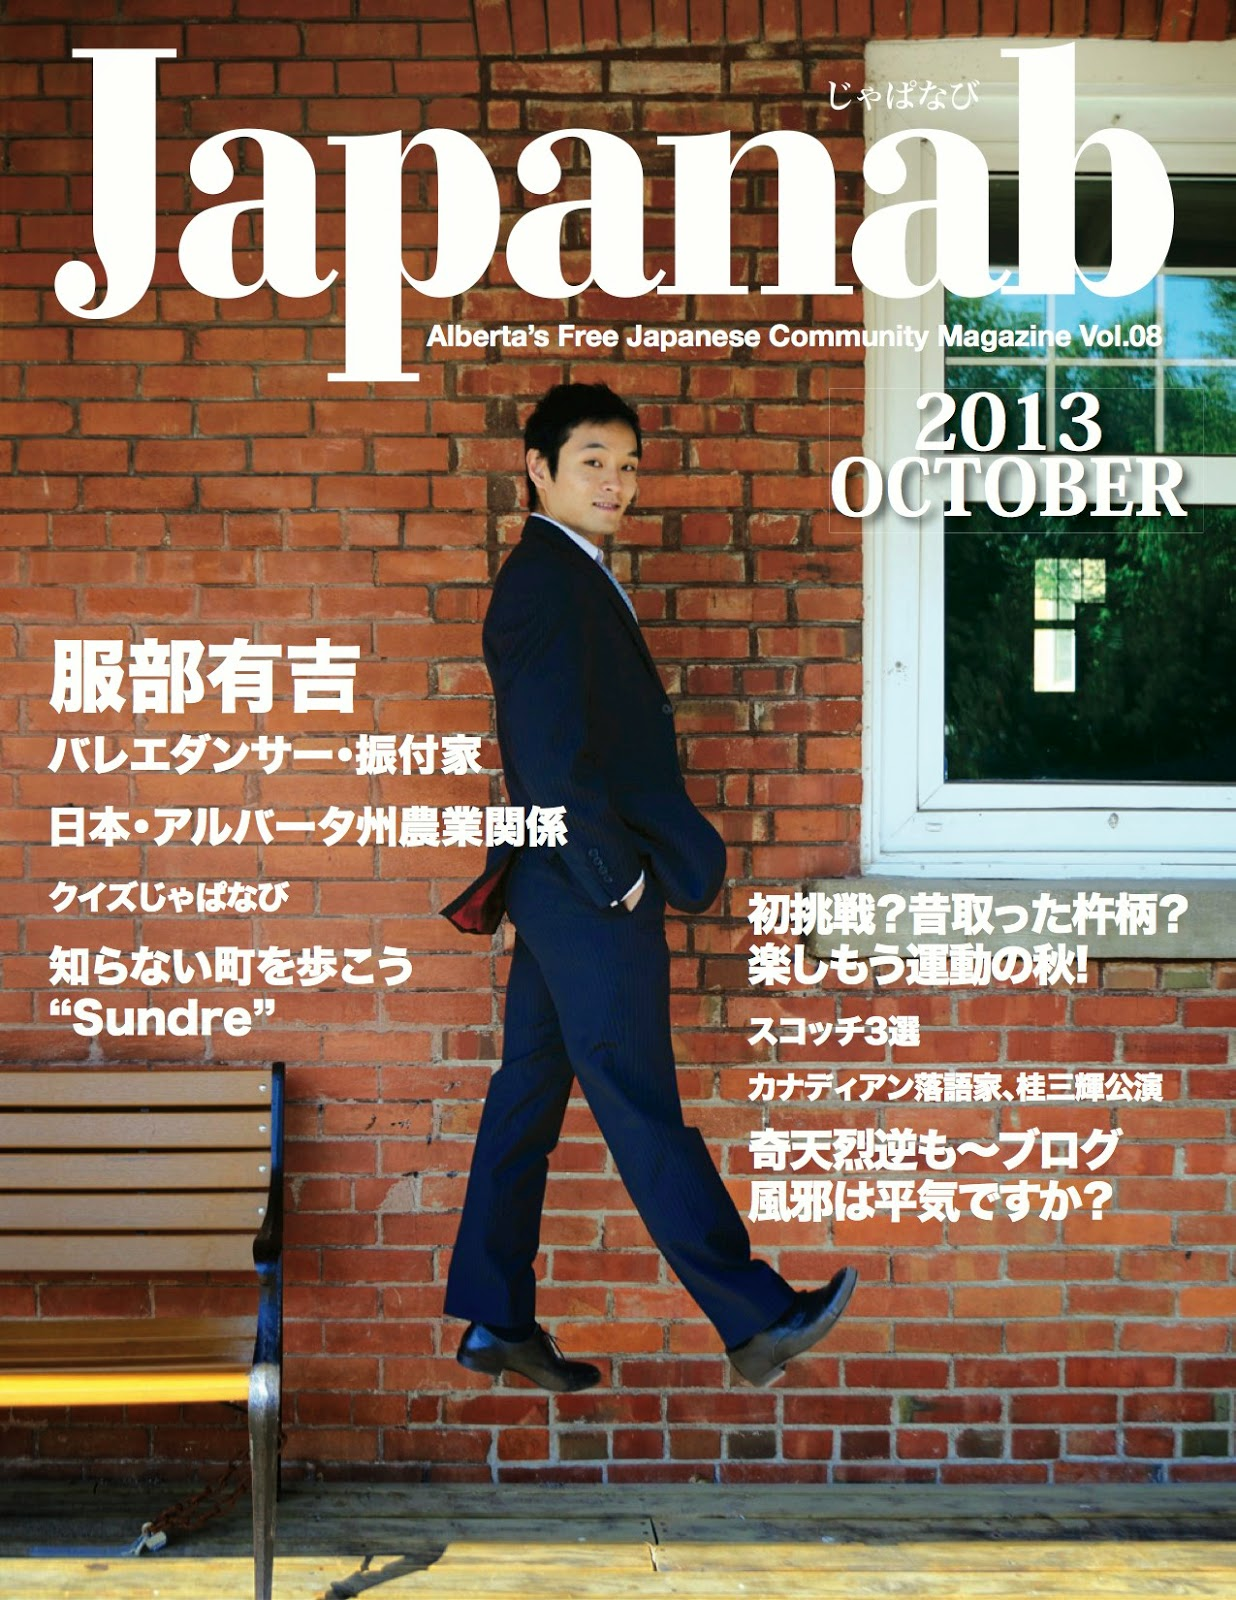 Japanab Vol. 8 - 2013 October